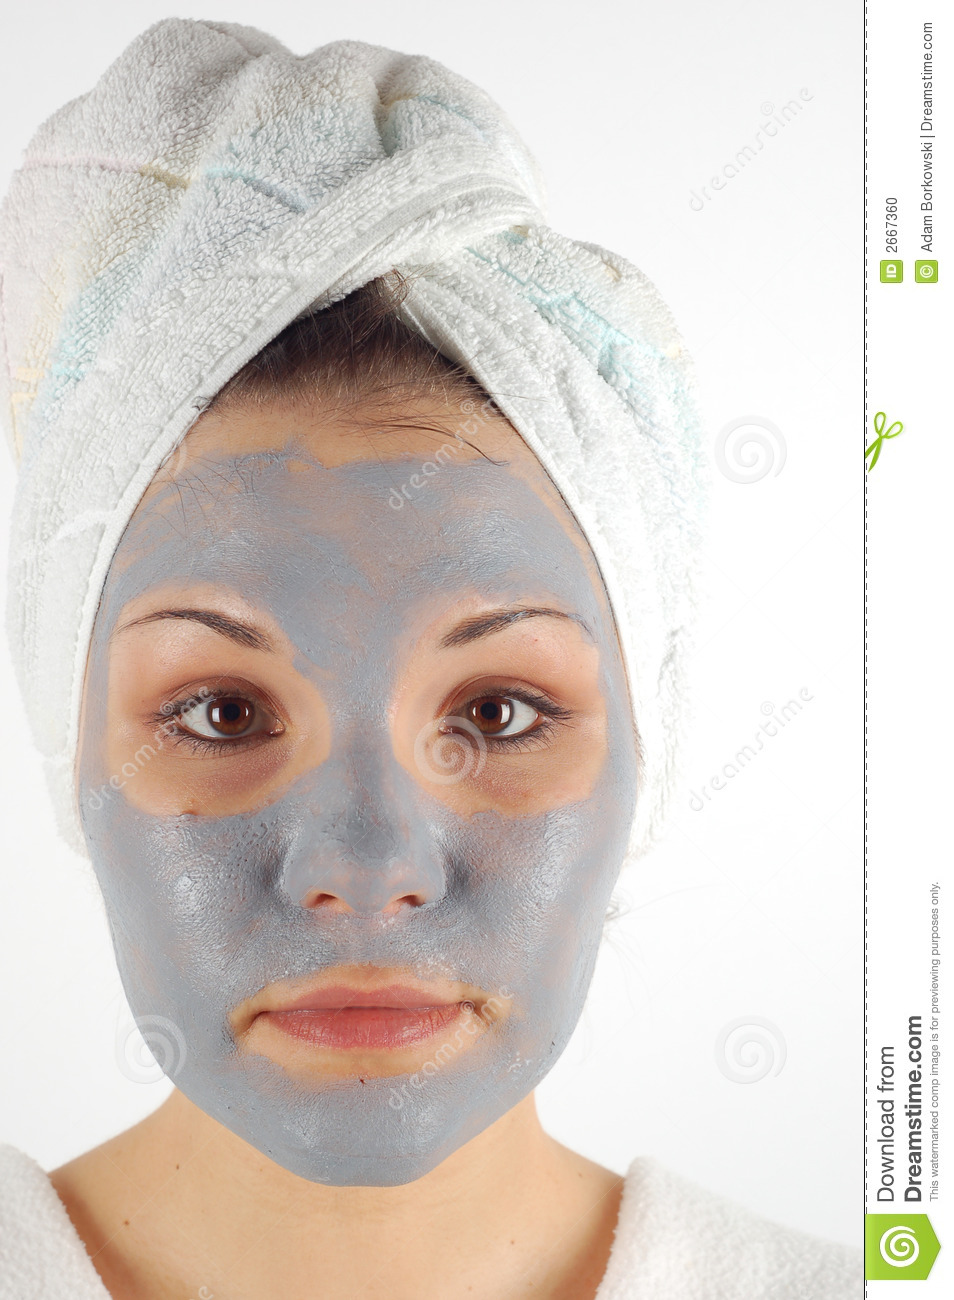 Beauty mask #33